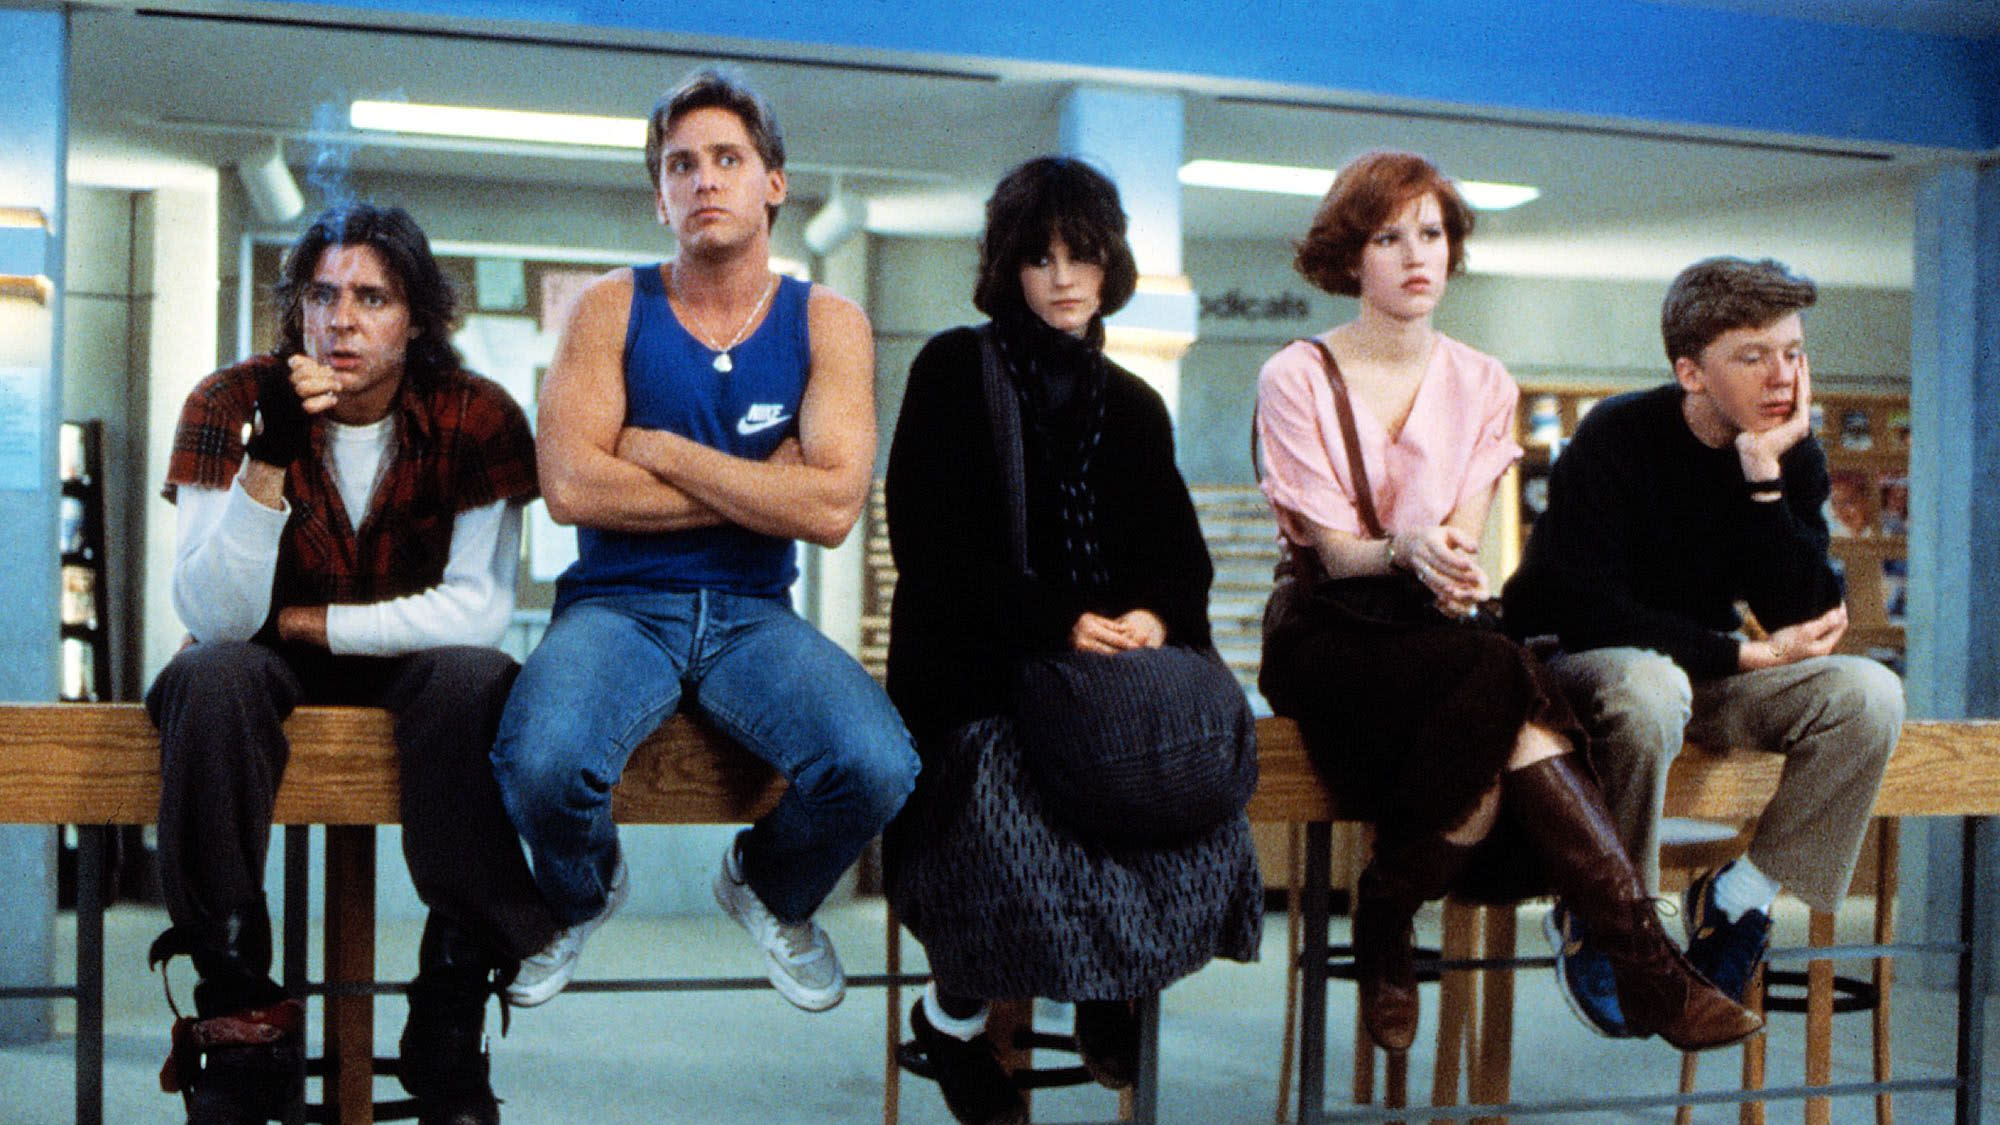 'The Breakfast Club' would be completely different if made today, says star Ally Sheedy